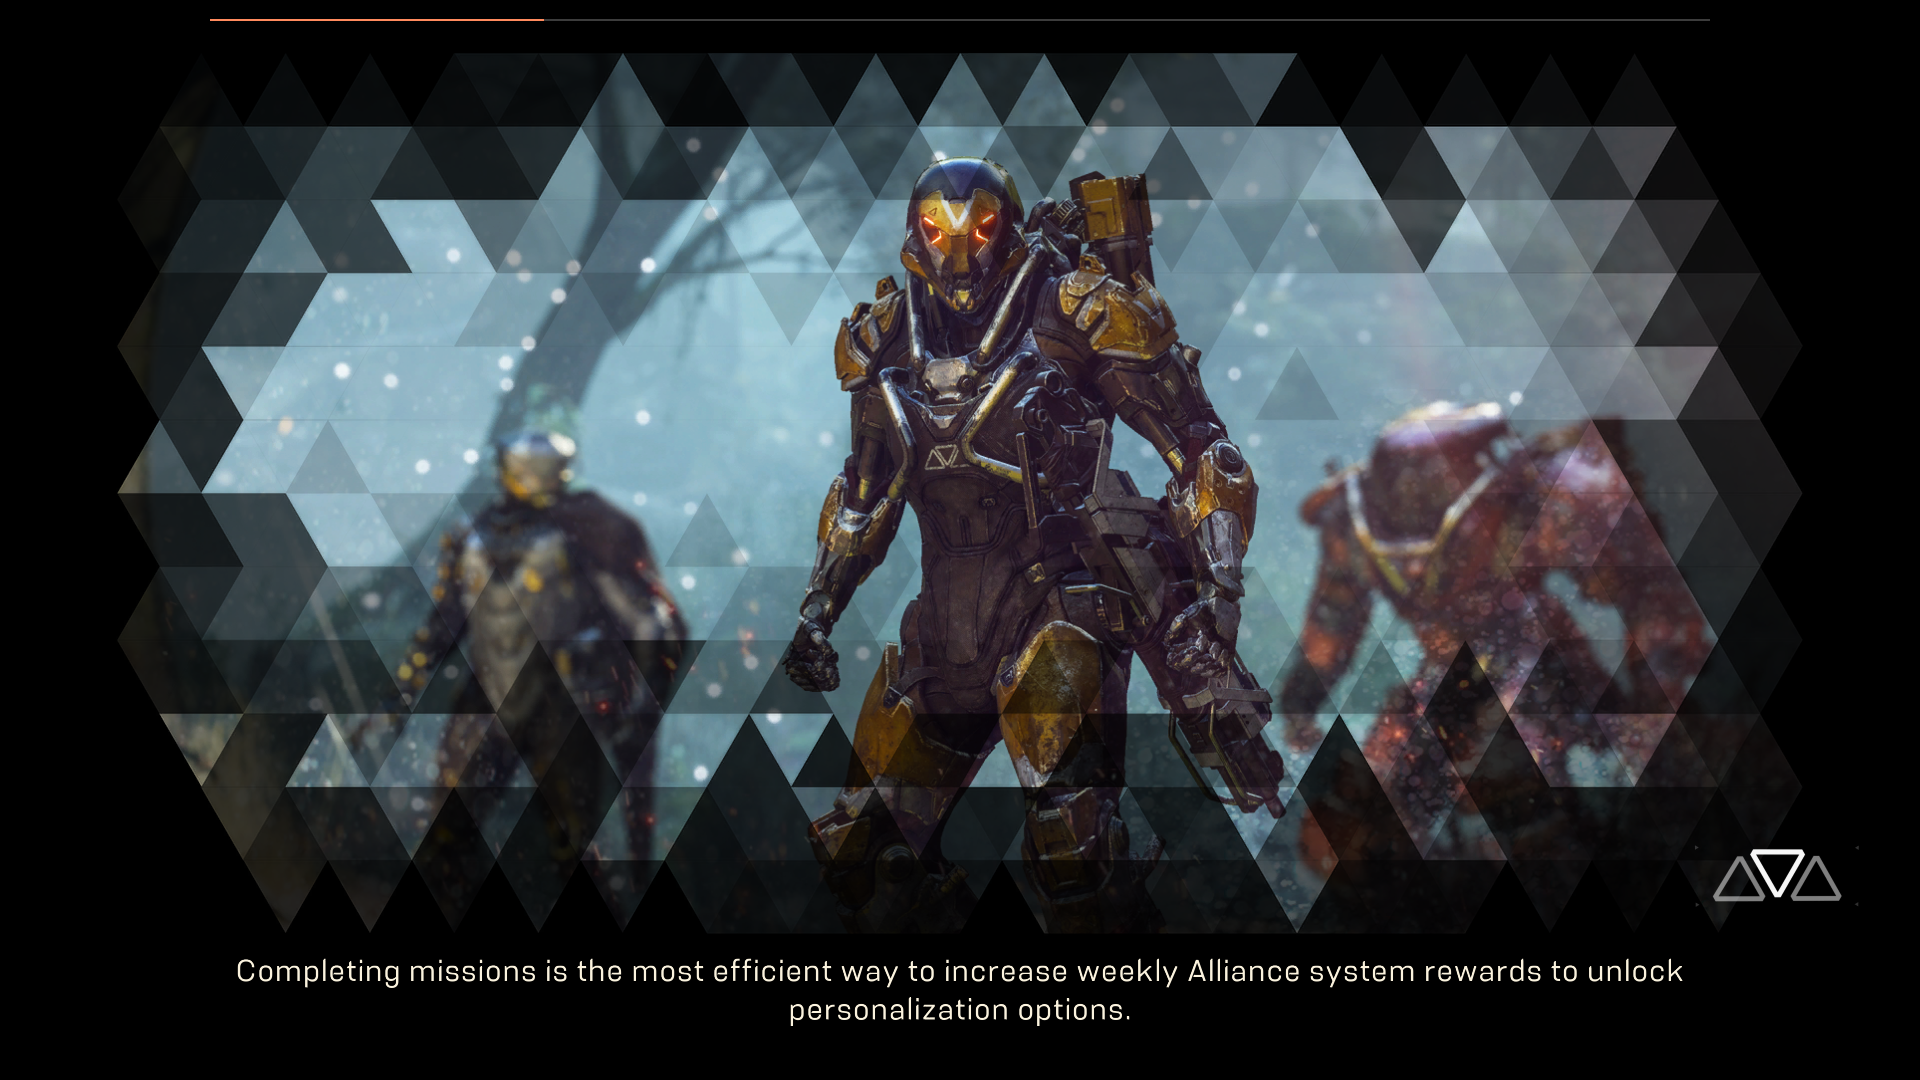 Anthem not running smoothly - Answer HQ